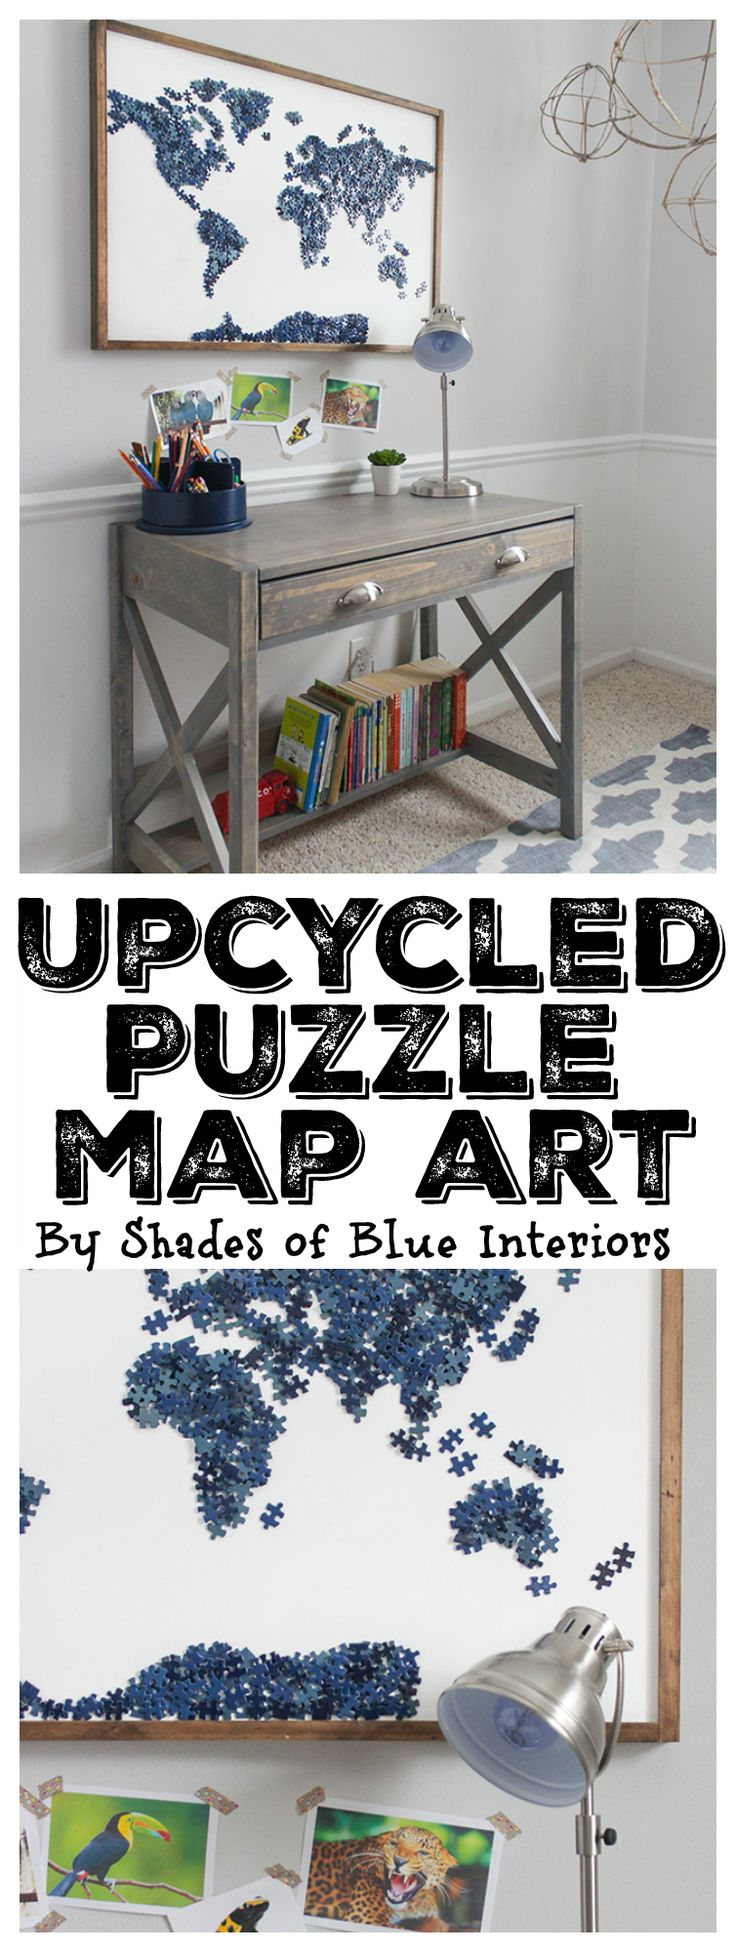 Upcycled Puzzle Map Art